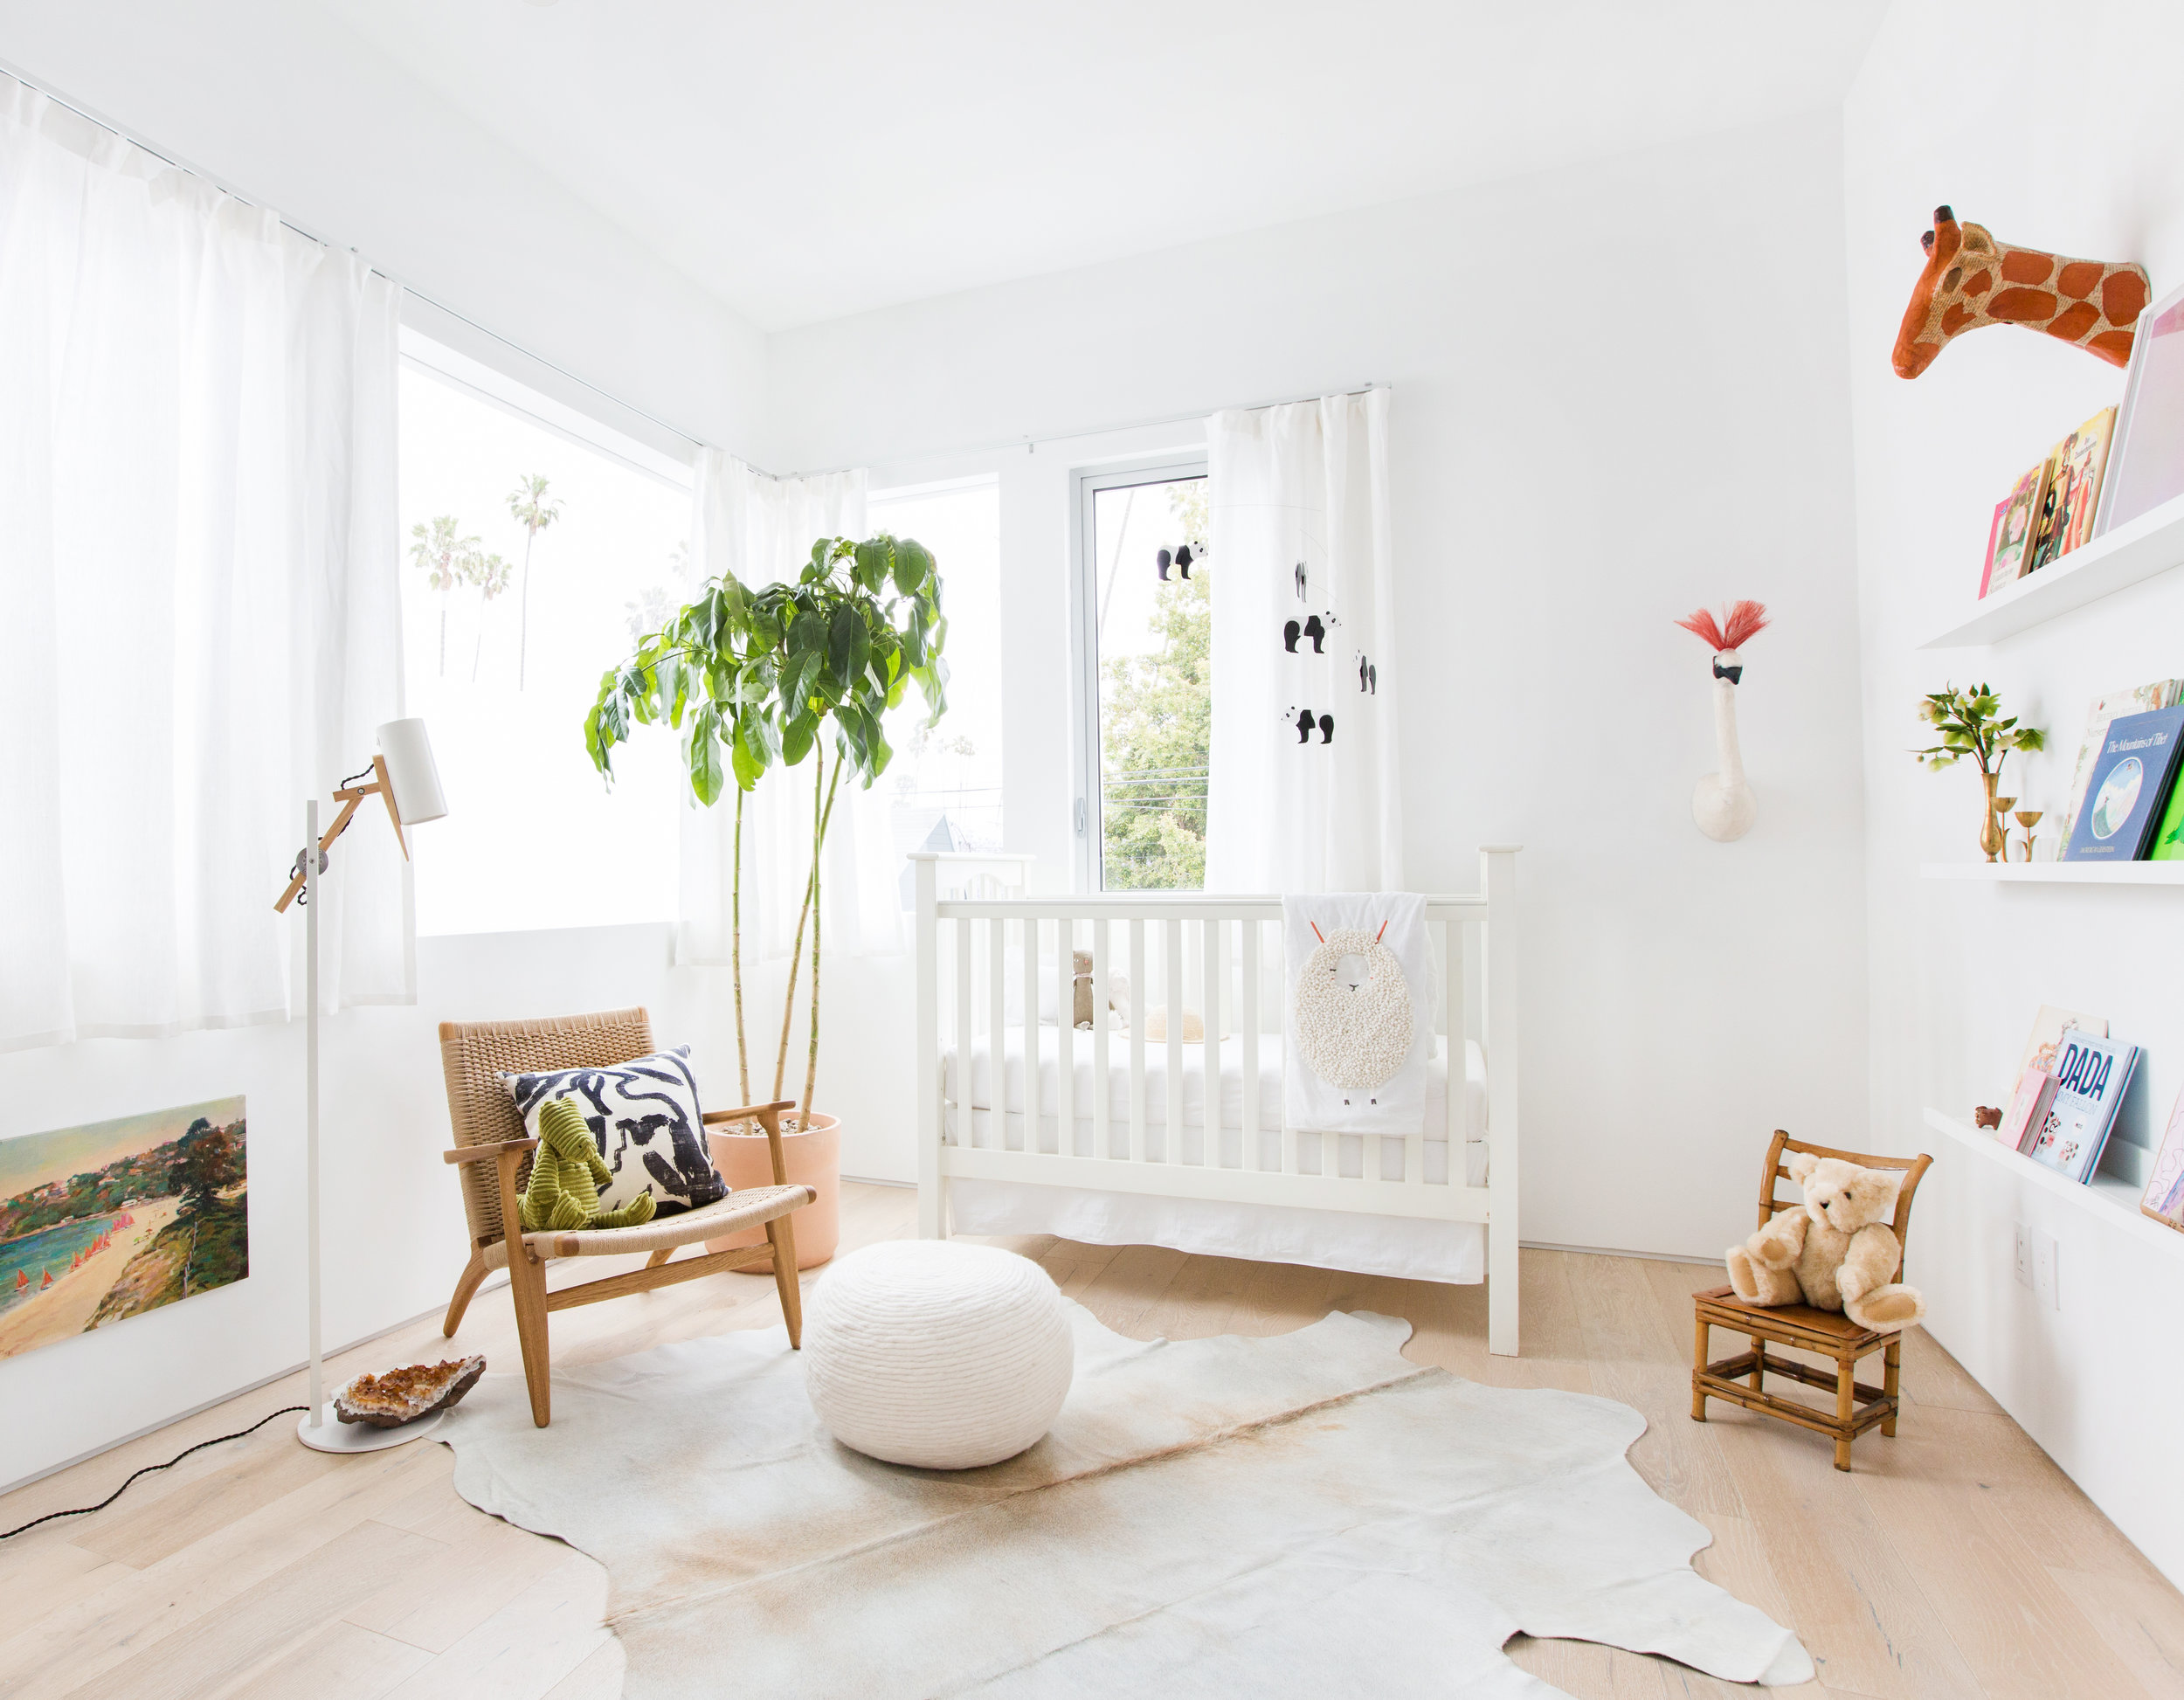 Chic Baby Furniture - We're all for sophisticated baby nurseries. If you're in the market for stylish items to outfit a room for a bundle of joy in your life, consider these options from a selection of brands on Dering Hall.